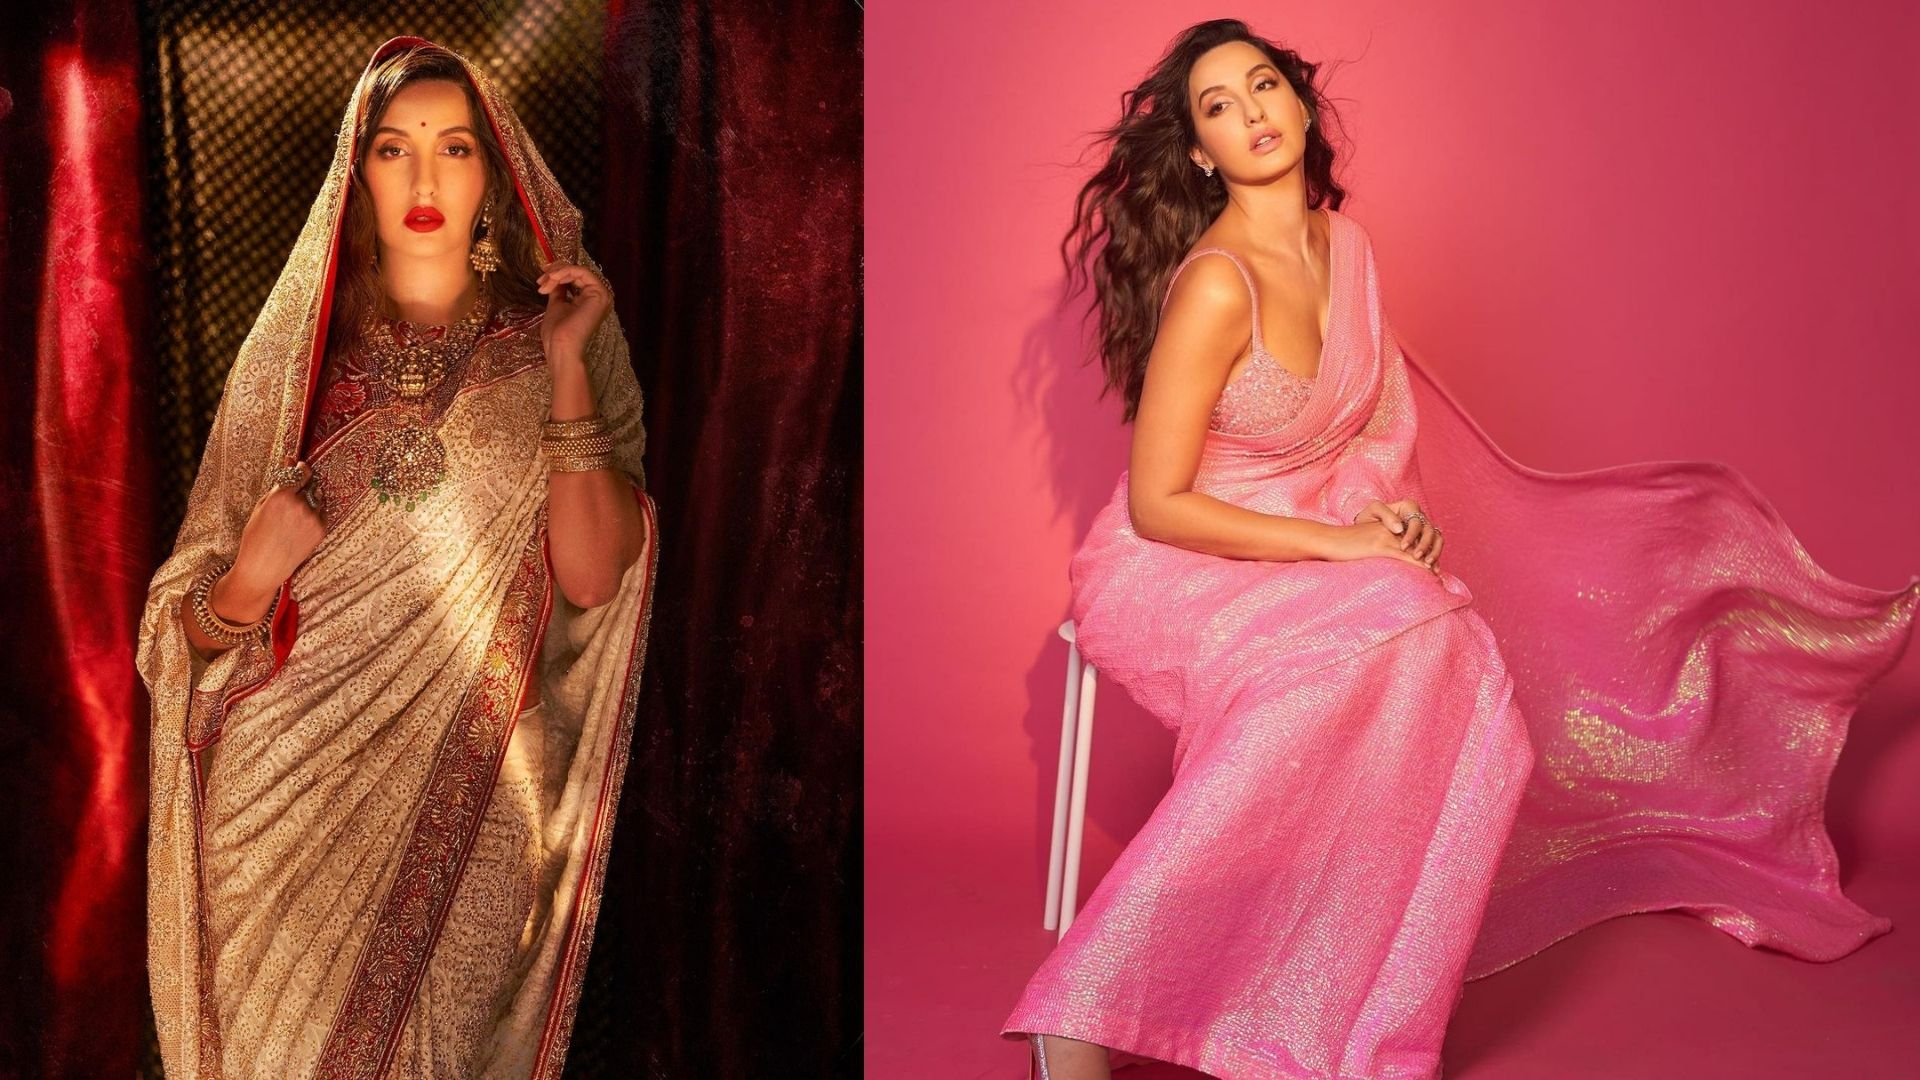 Nora Fatehi's Elegant Saree Looks Will Make You Go Weak In The Knees As She Gives Major Ethnic Goals